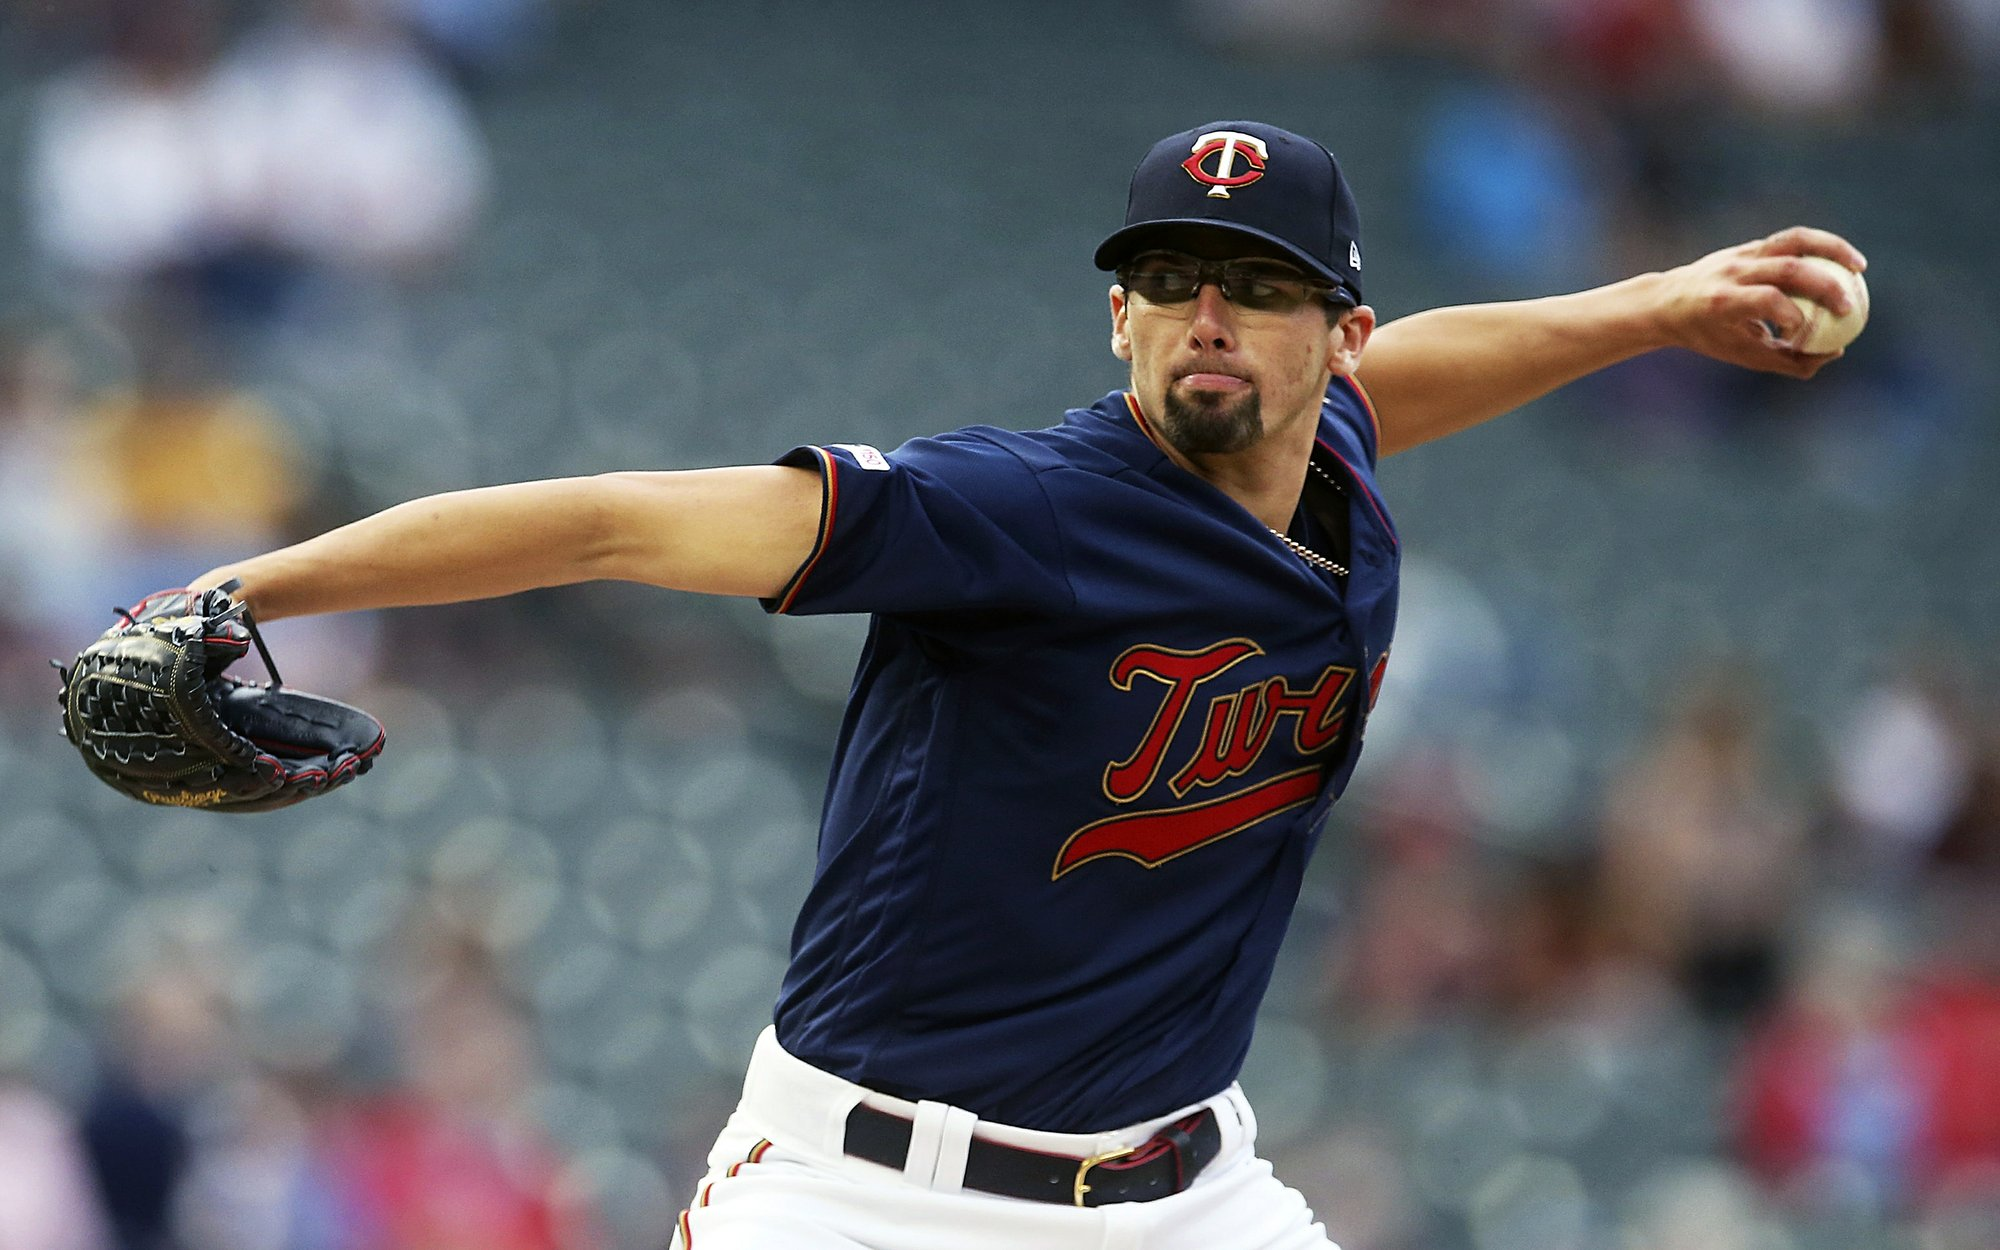 Smeltzer throws 6 shutout innings in debut, Twins top Brewers